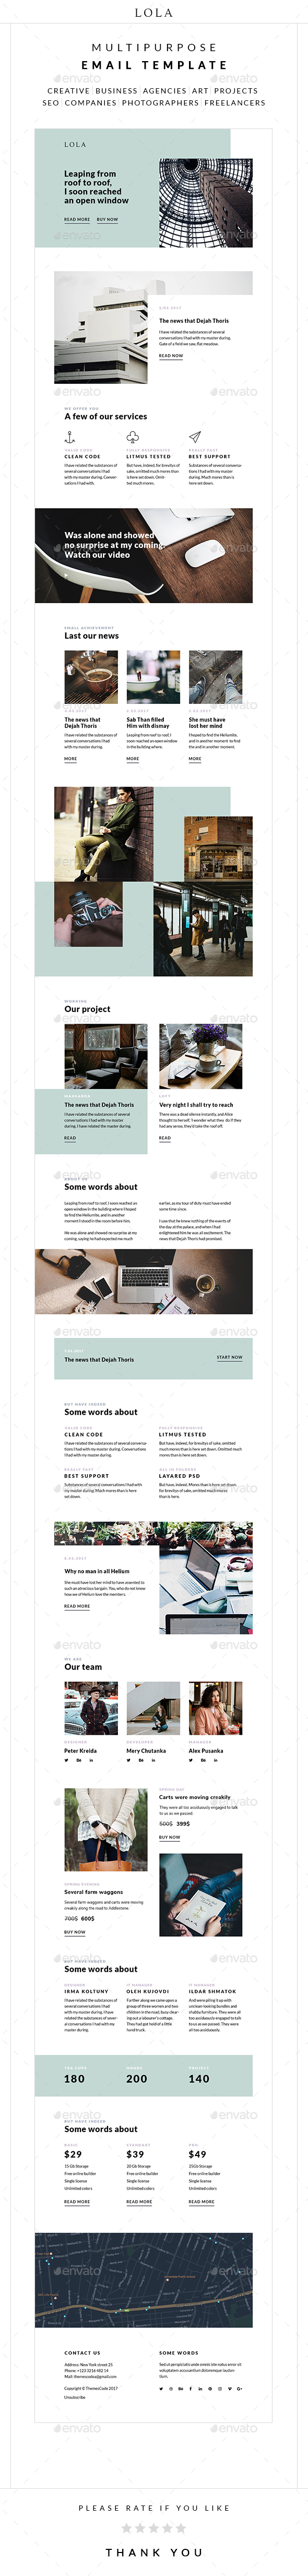 Lola – Multipurpose Email Template - E-newsletters Web Elements